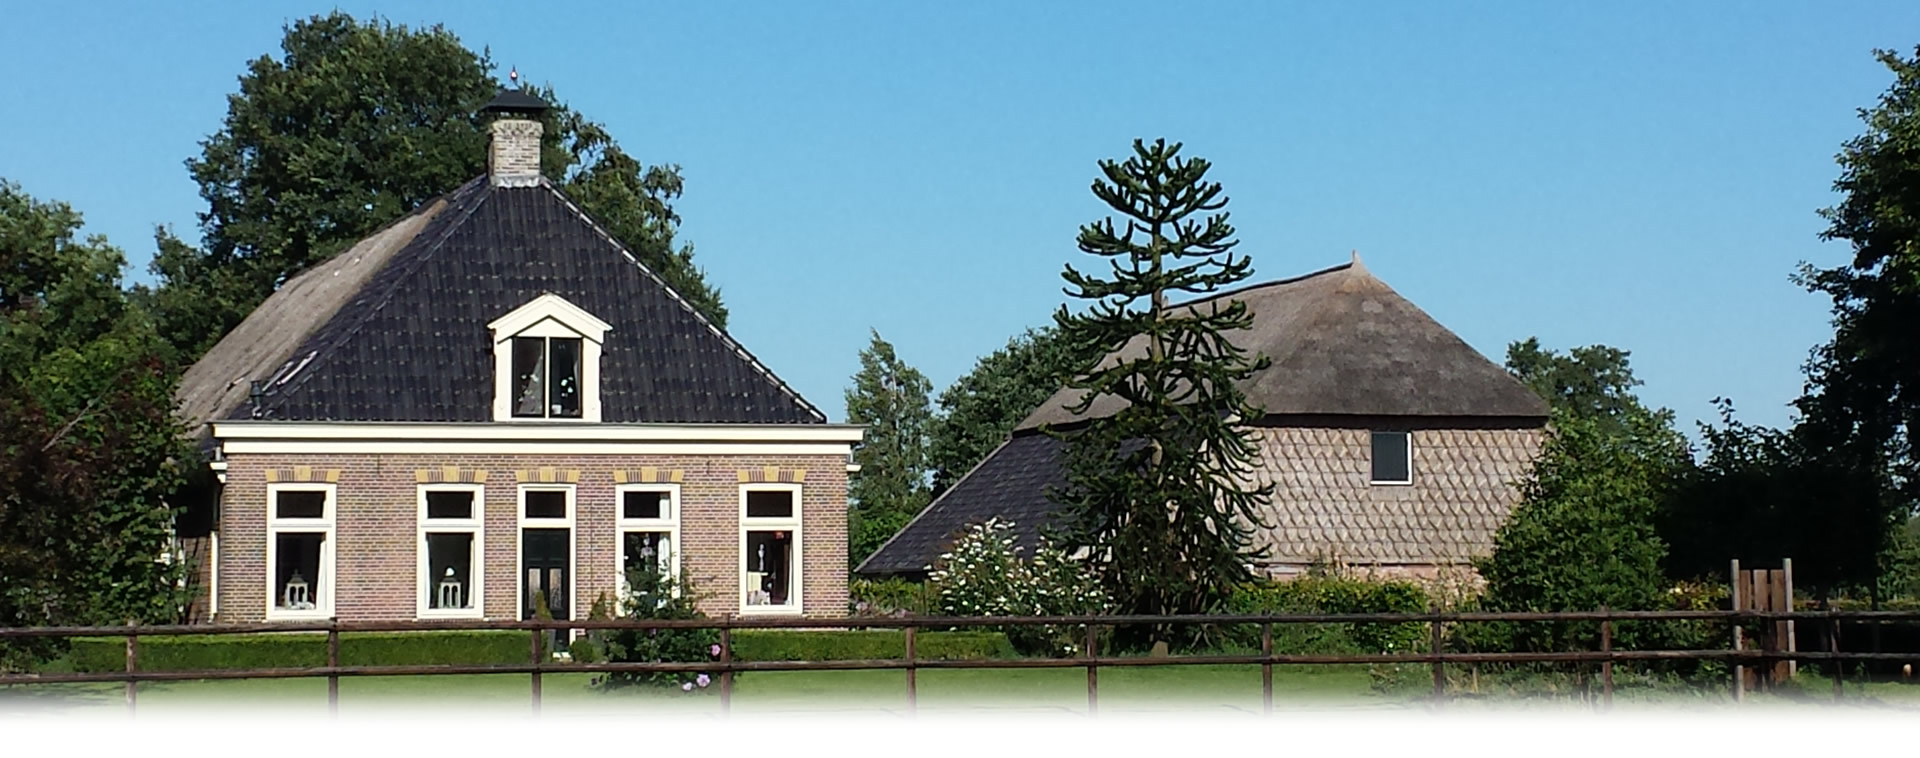 wellness in drenthe